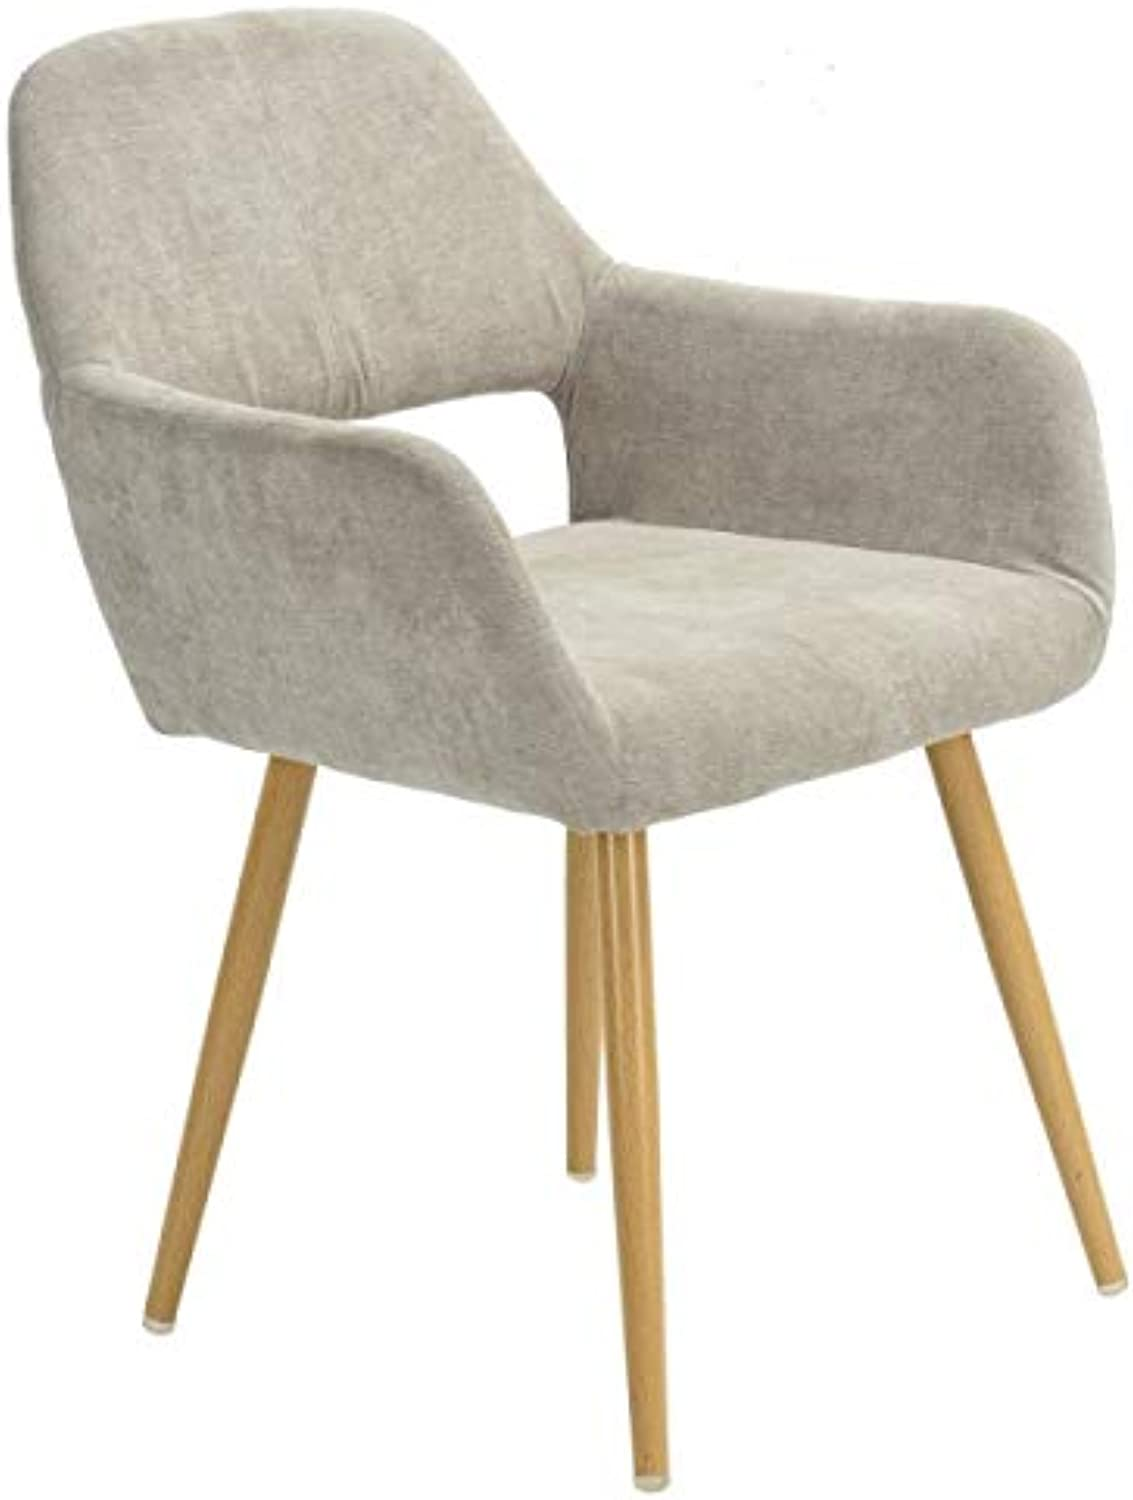 Dining Side Chair with Arm - Steel Legs Fabric Cover Beige